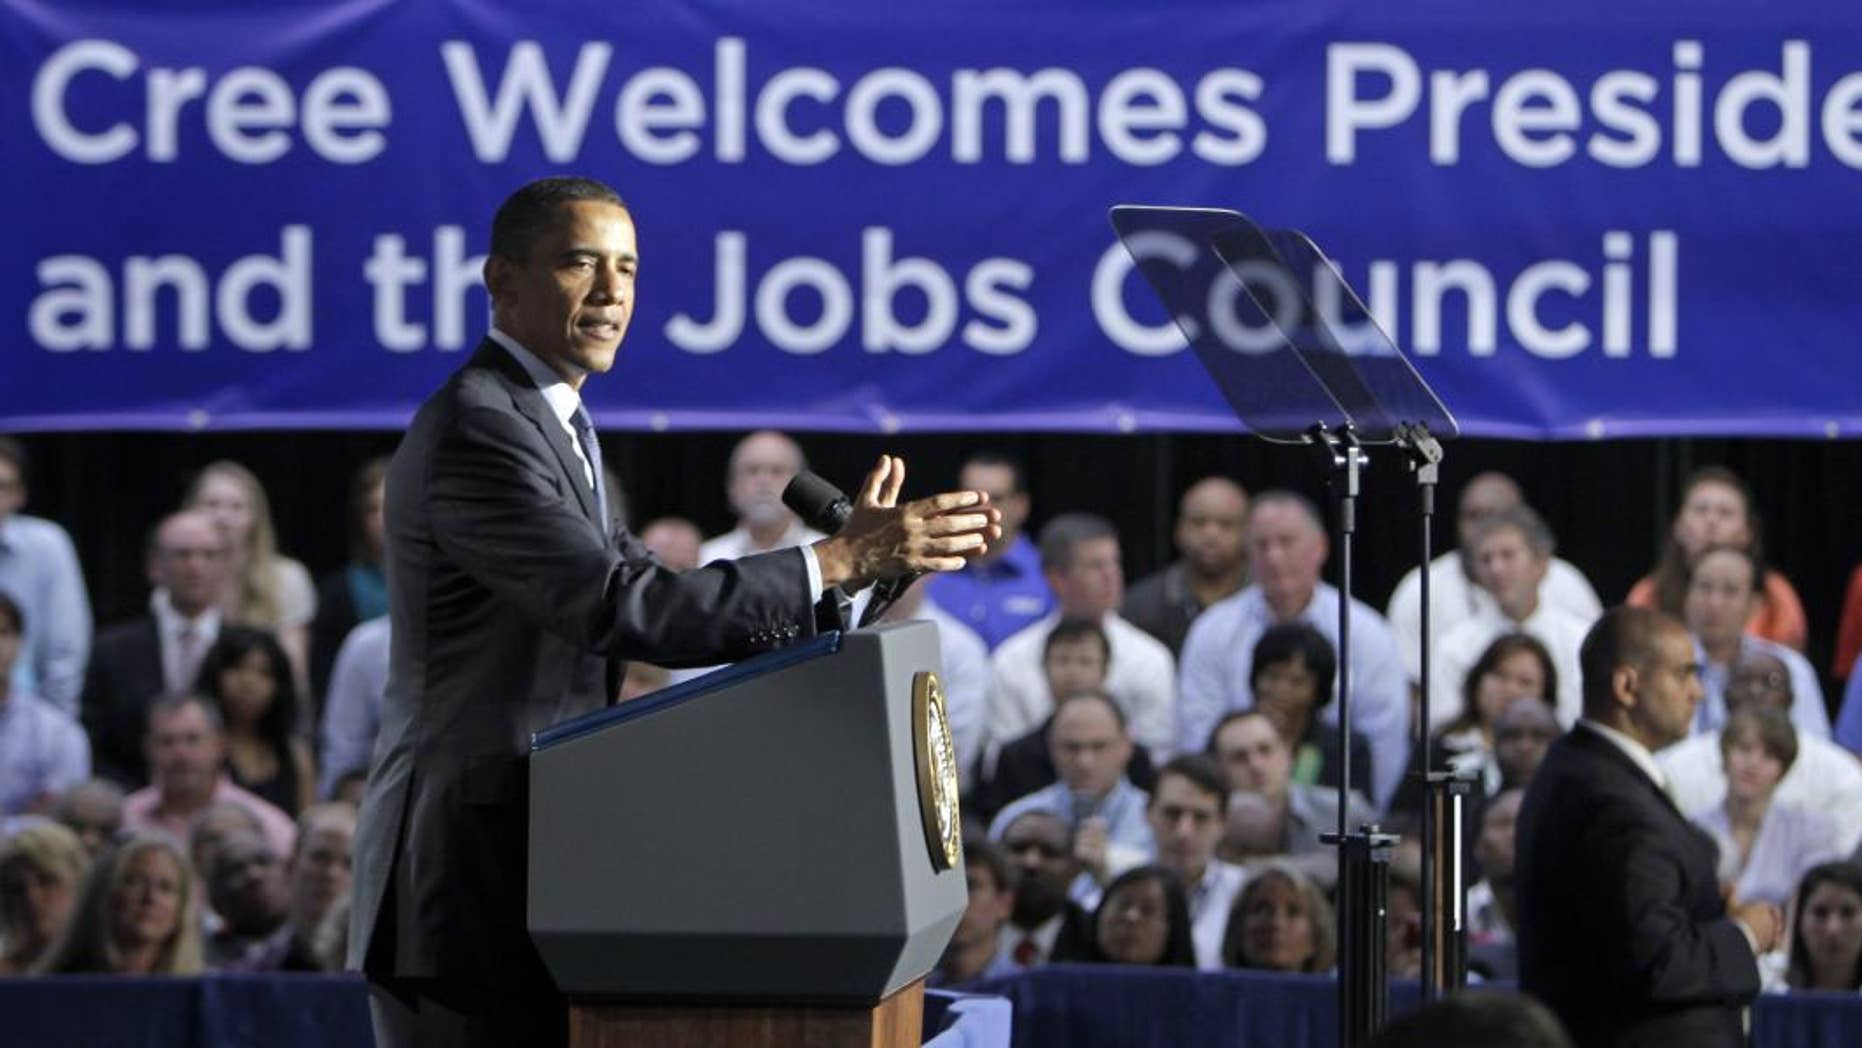 President Barack Obama speaks to employees and guests at Cree, Inc., a leading manufacturer of energy-efficient LED lighting, in Durham, N.C., Monday, June 13, 2011. (AP Photo/Chuck Burton)